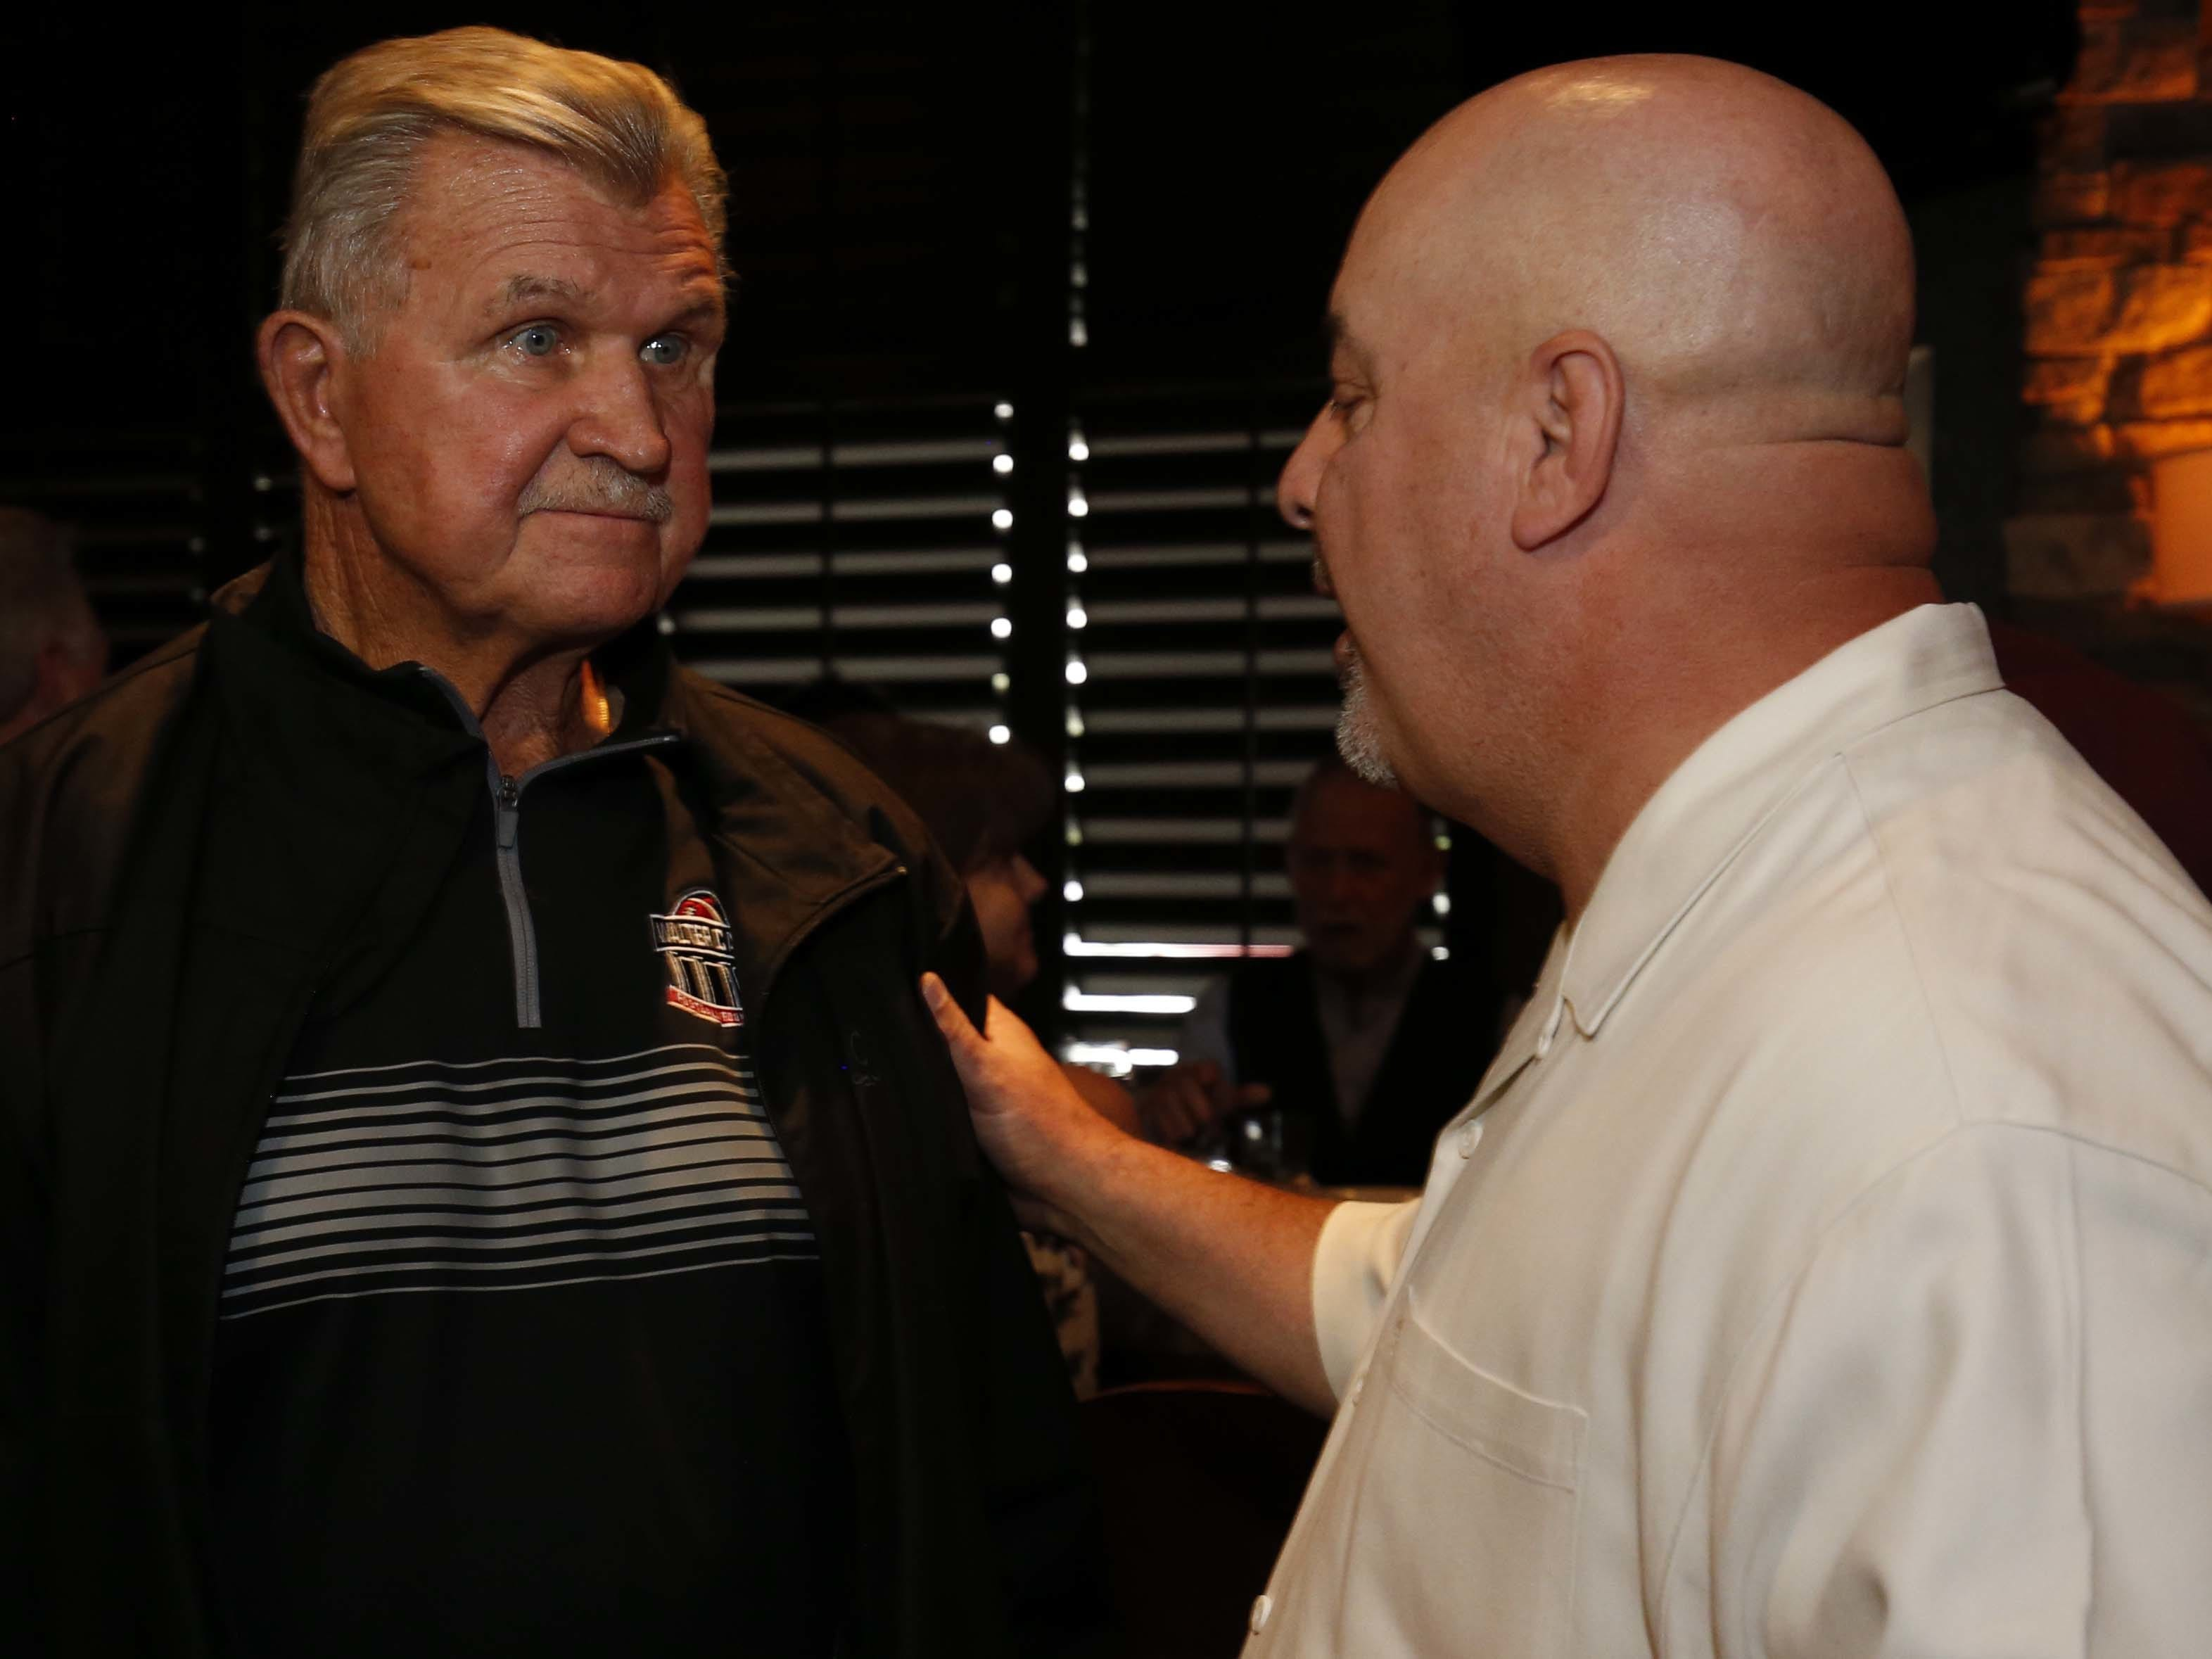 May 20: The legendary Chicago Bears coach Mike Ditka visits Springfield.